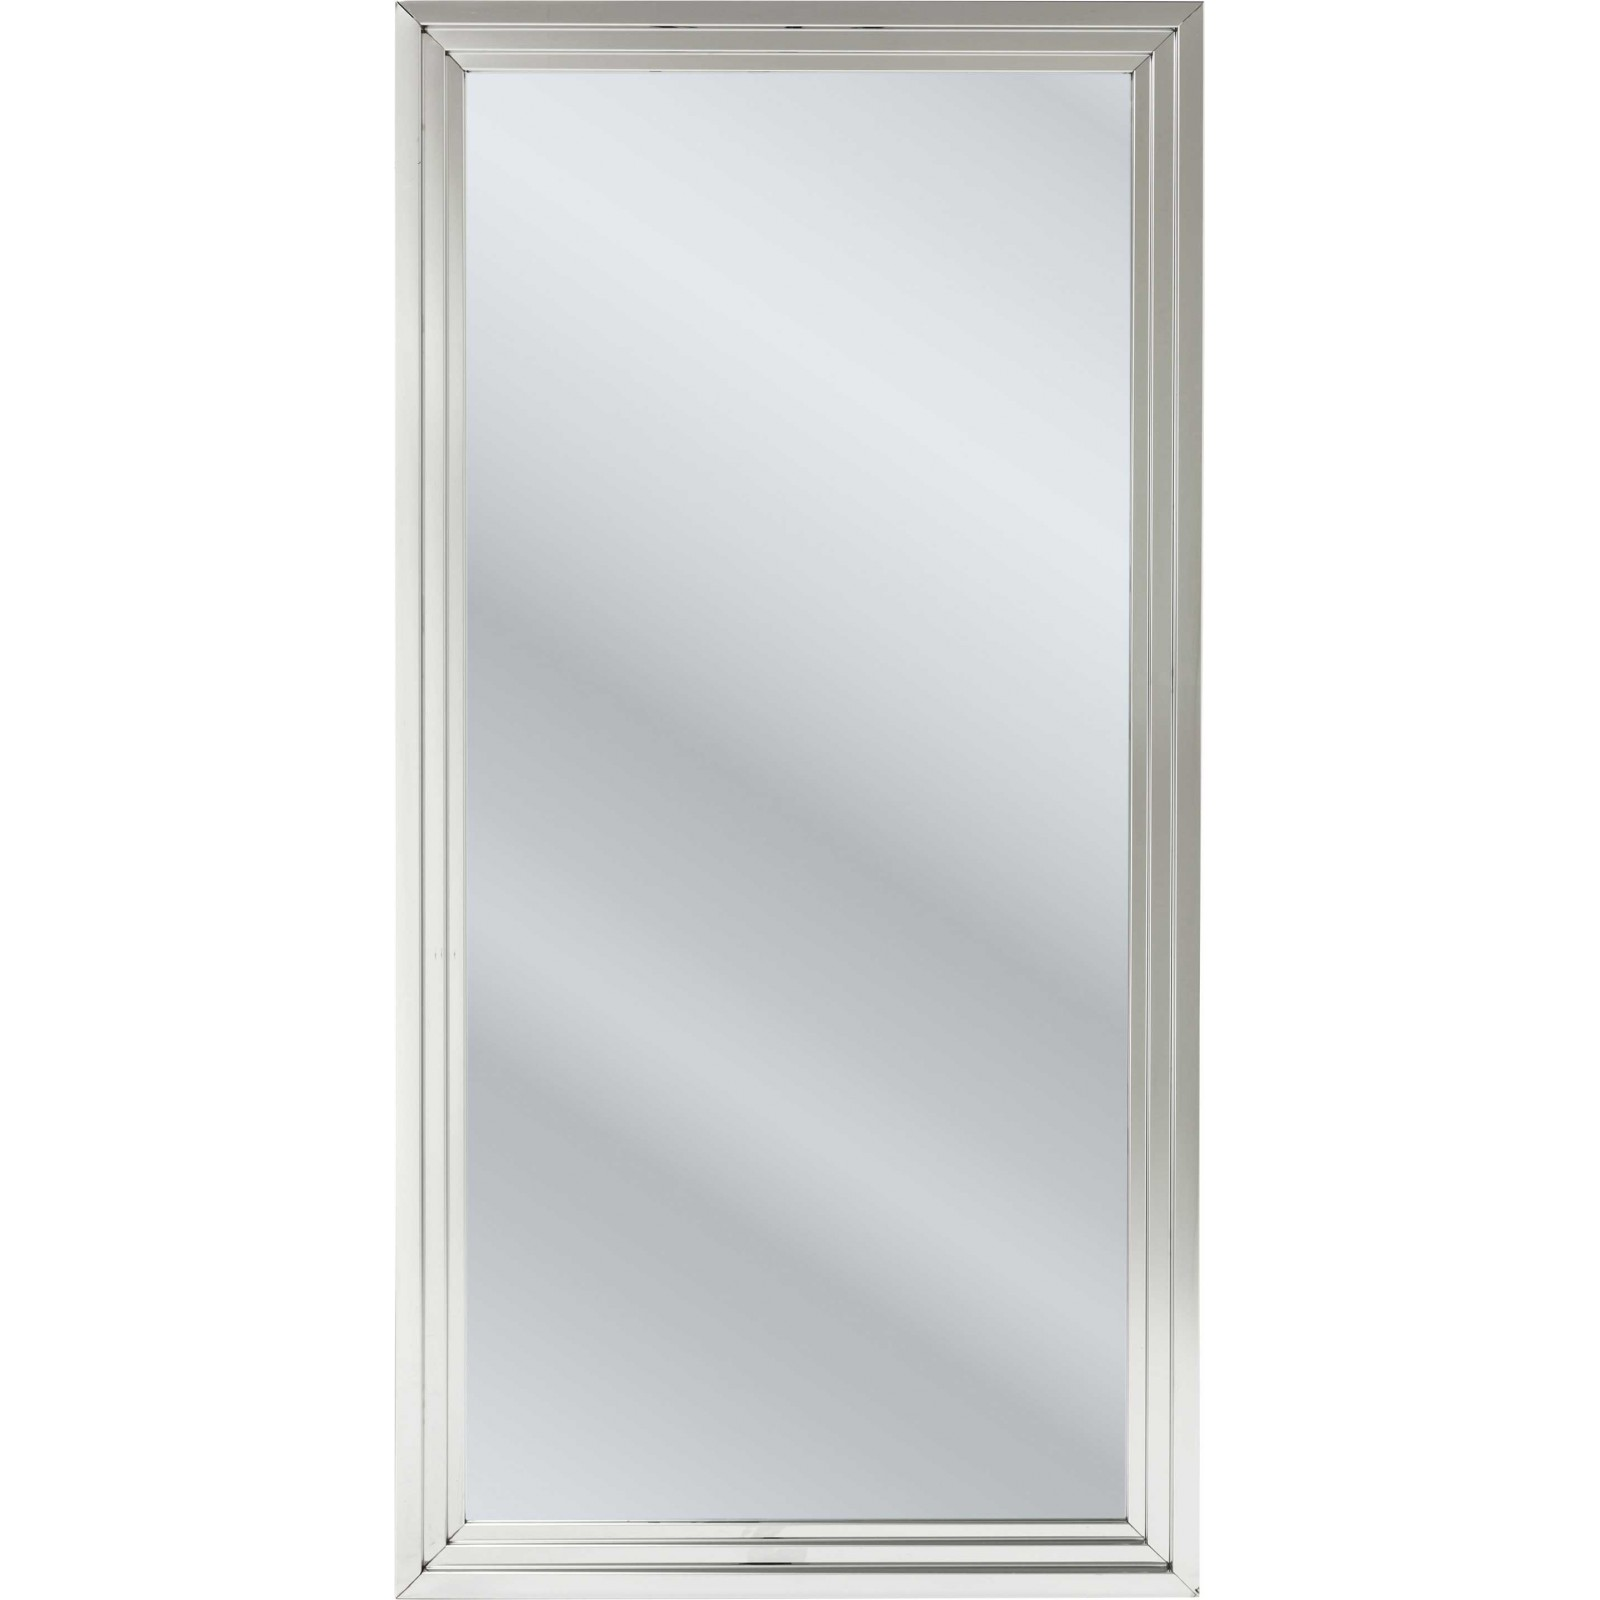 Miroir steel step argent 180x90 cm kare design for Miroir 90 x 70